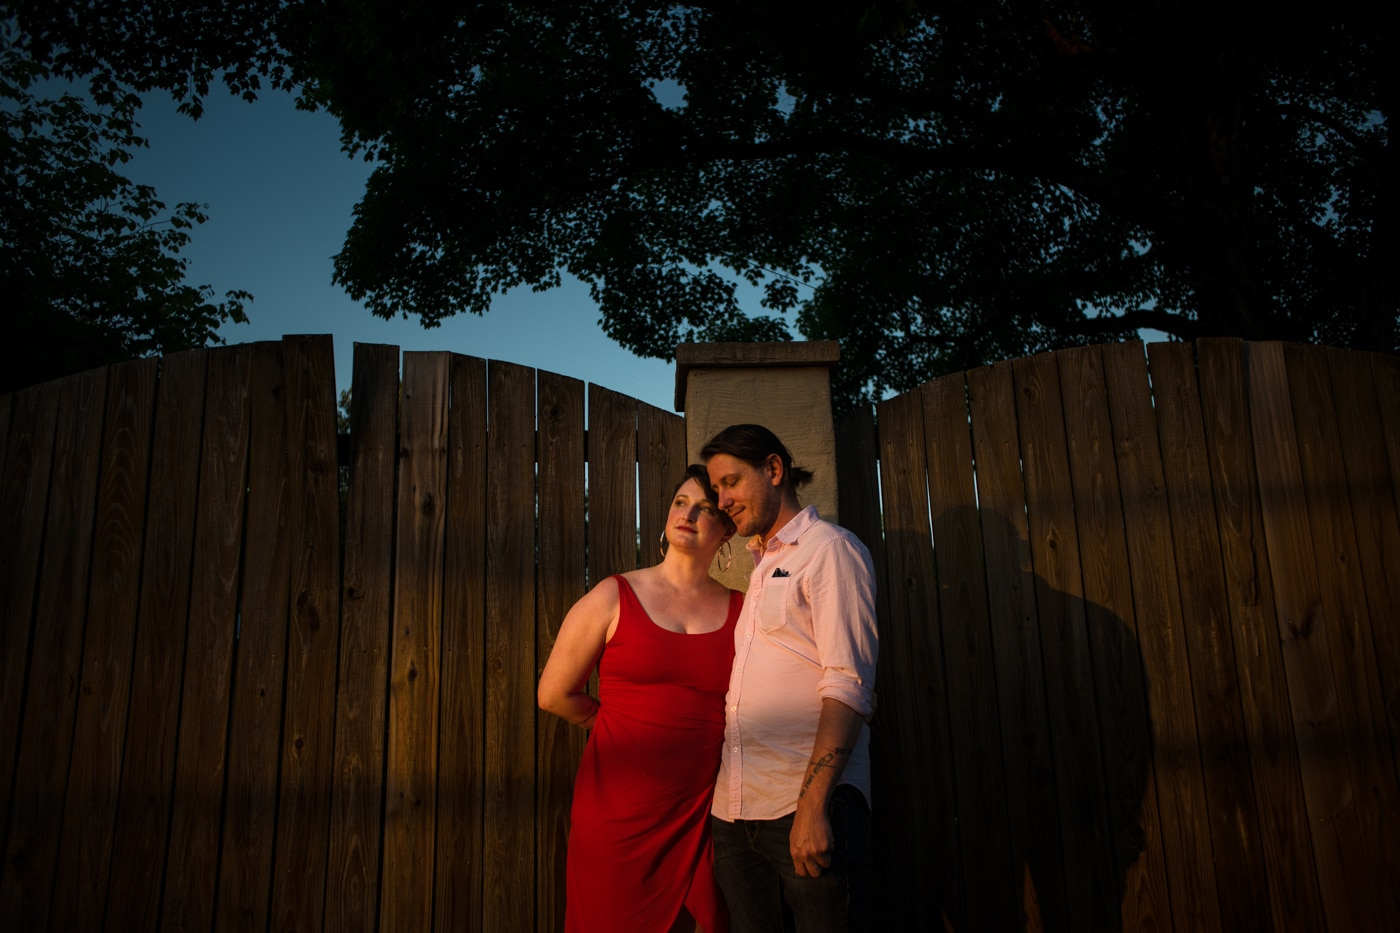 engaged couple poses by fence in backyard